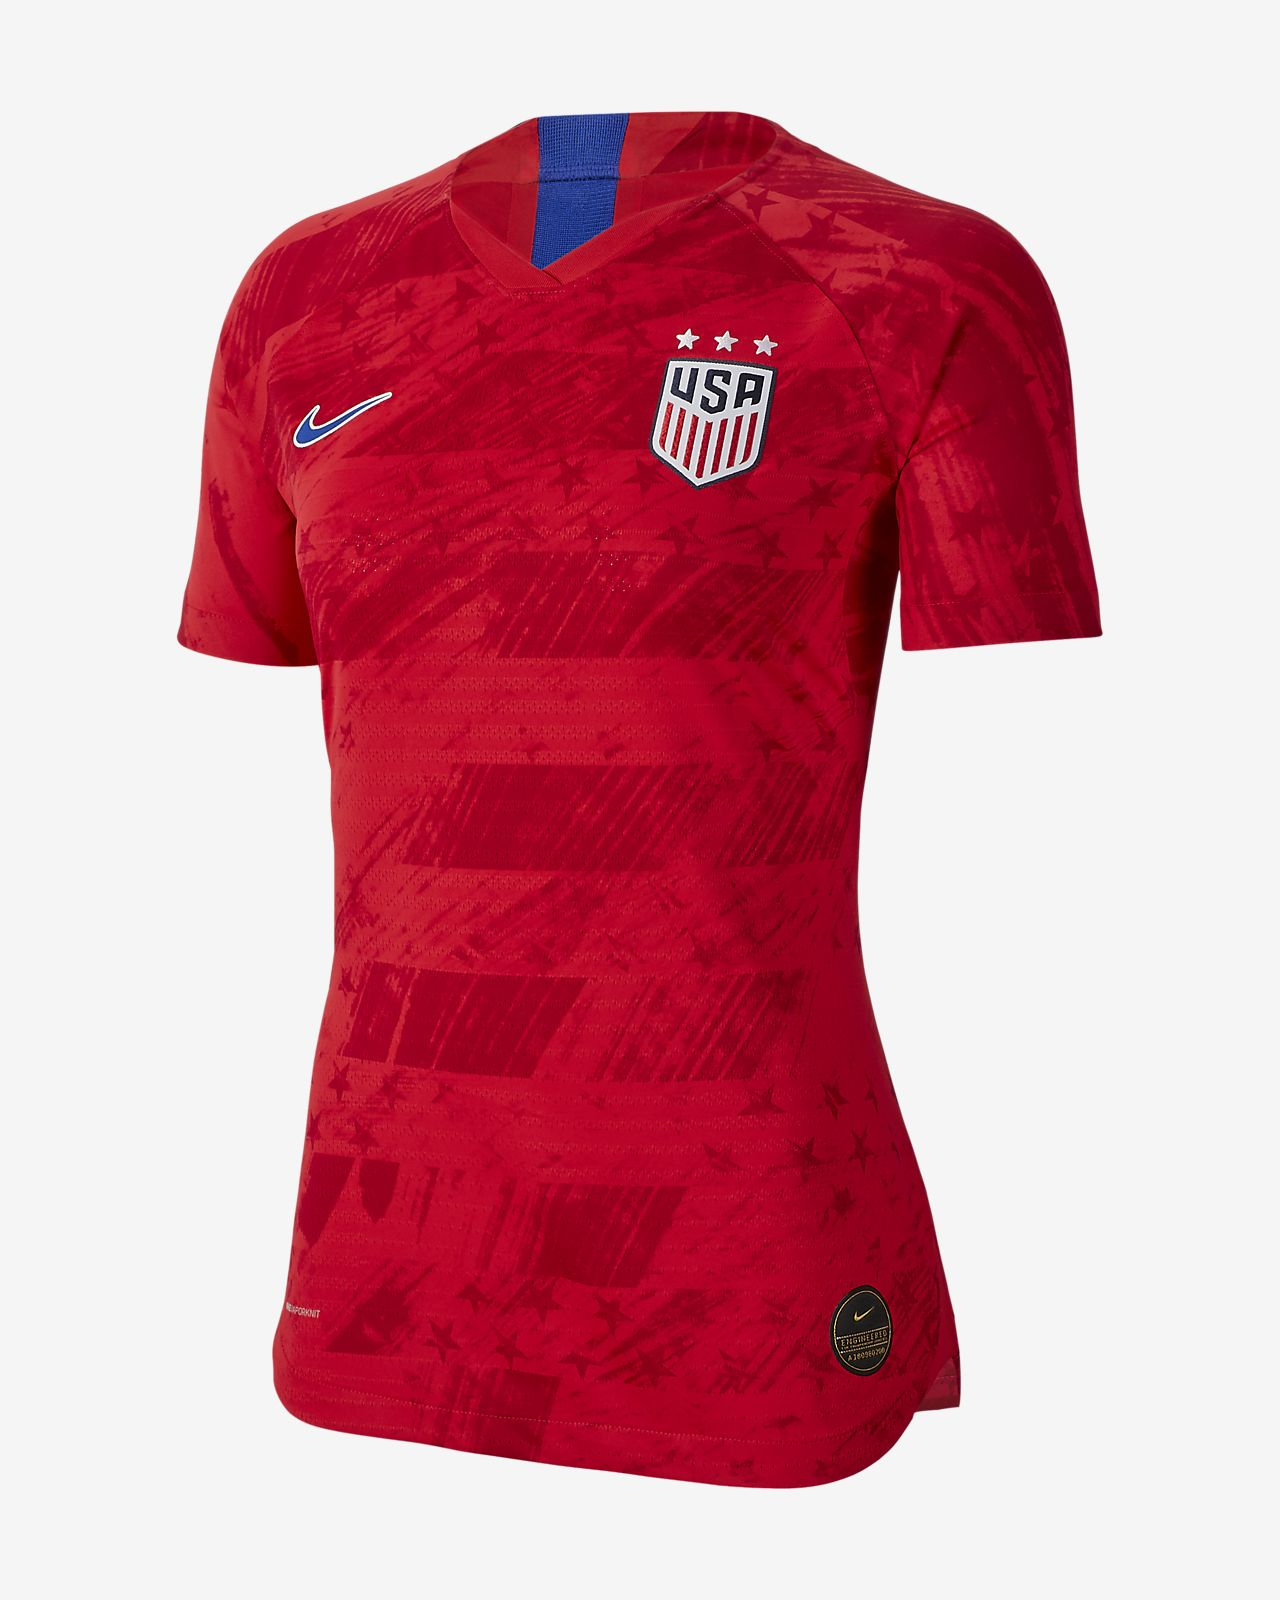 U.S. Vapor Match 2019 Women's Away Jersey